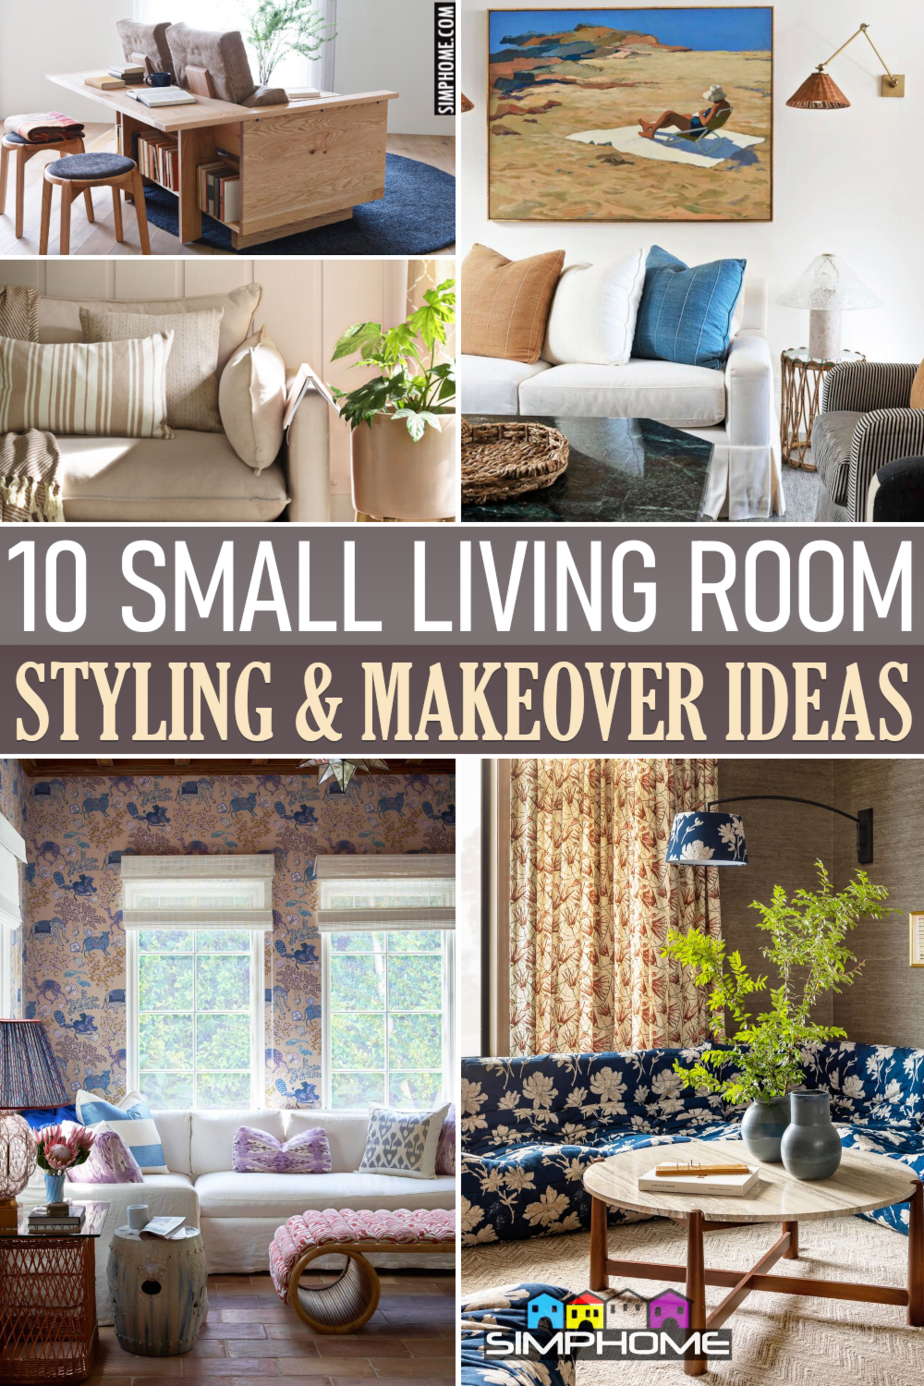 10 Small Living Room Styling Ideas VIA Simphome.comFeatured